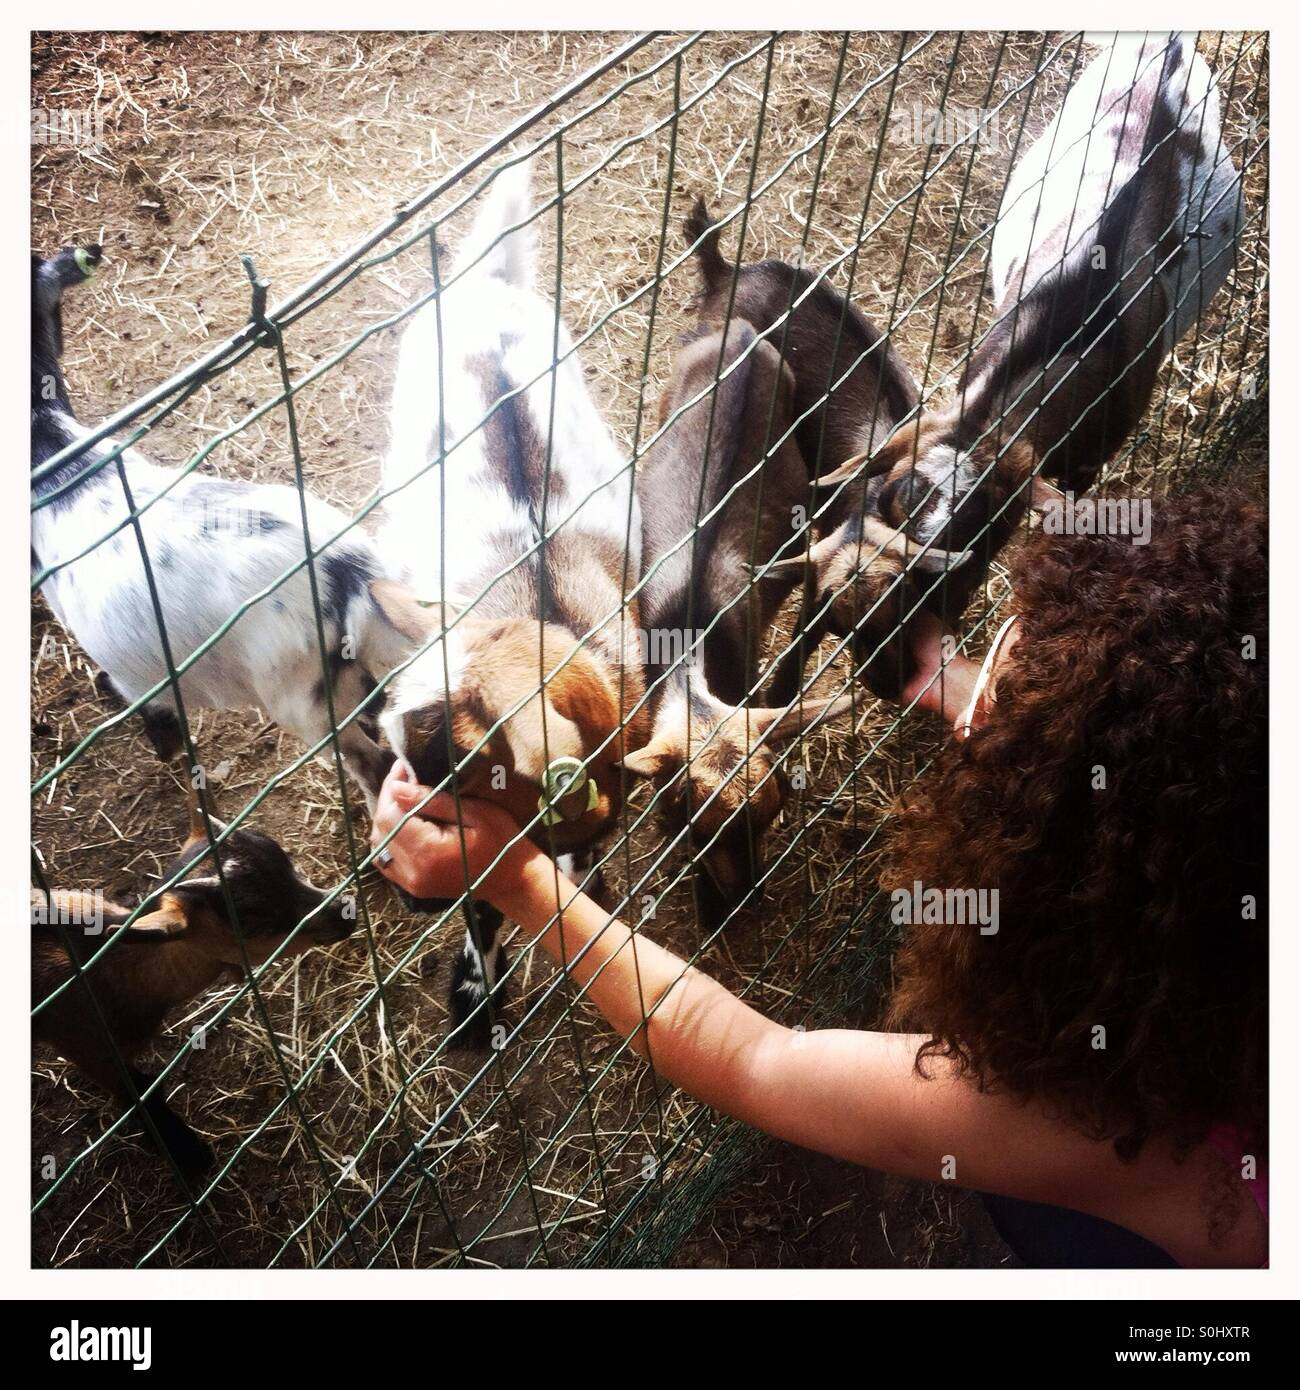 Woman petting small goats from behind a fence at a farm - Stock Image